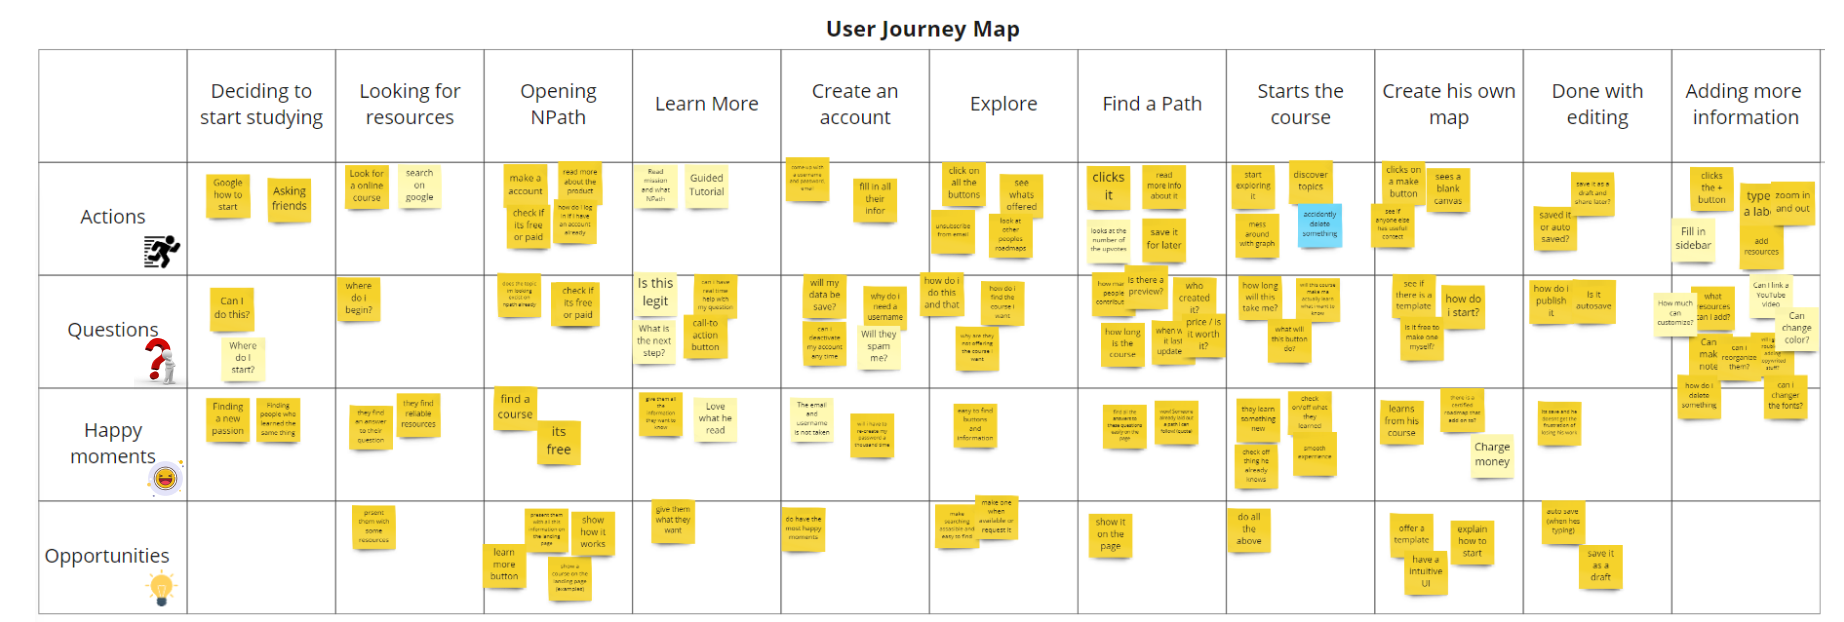 How can I add UX into a process that has already started?